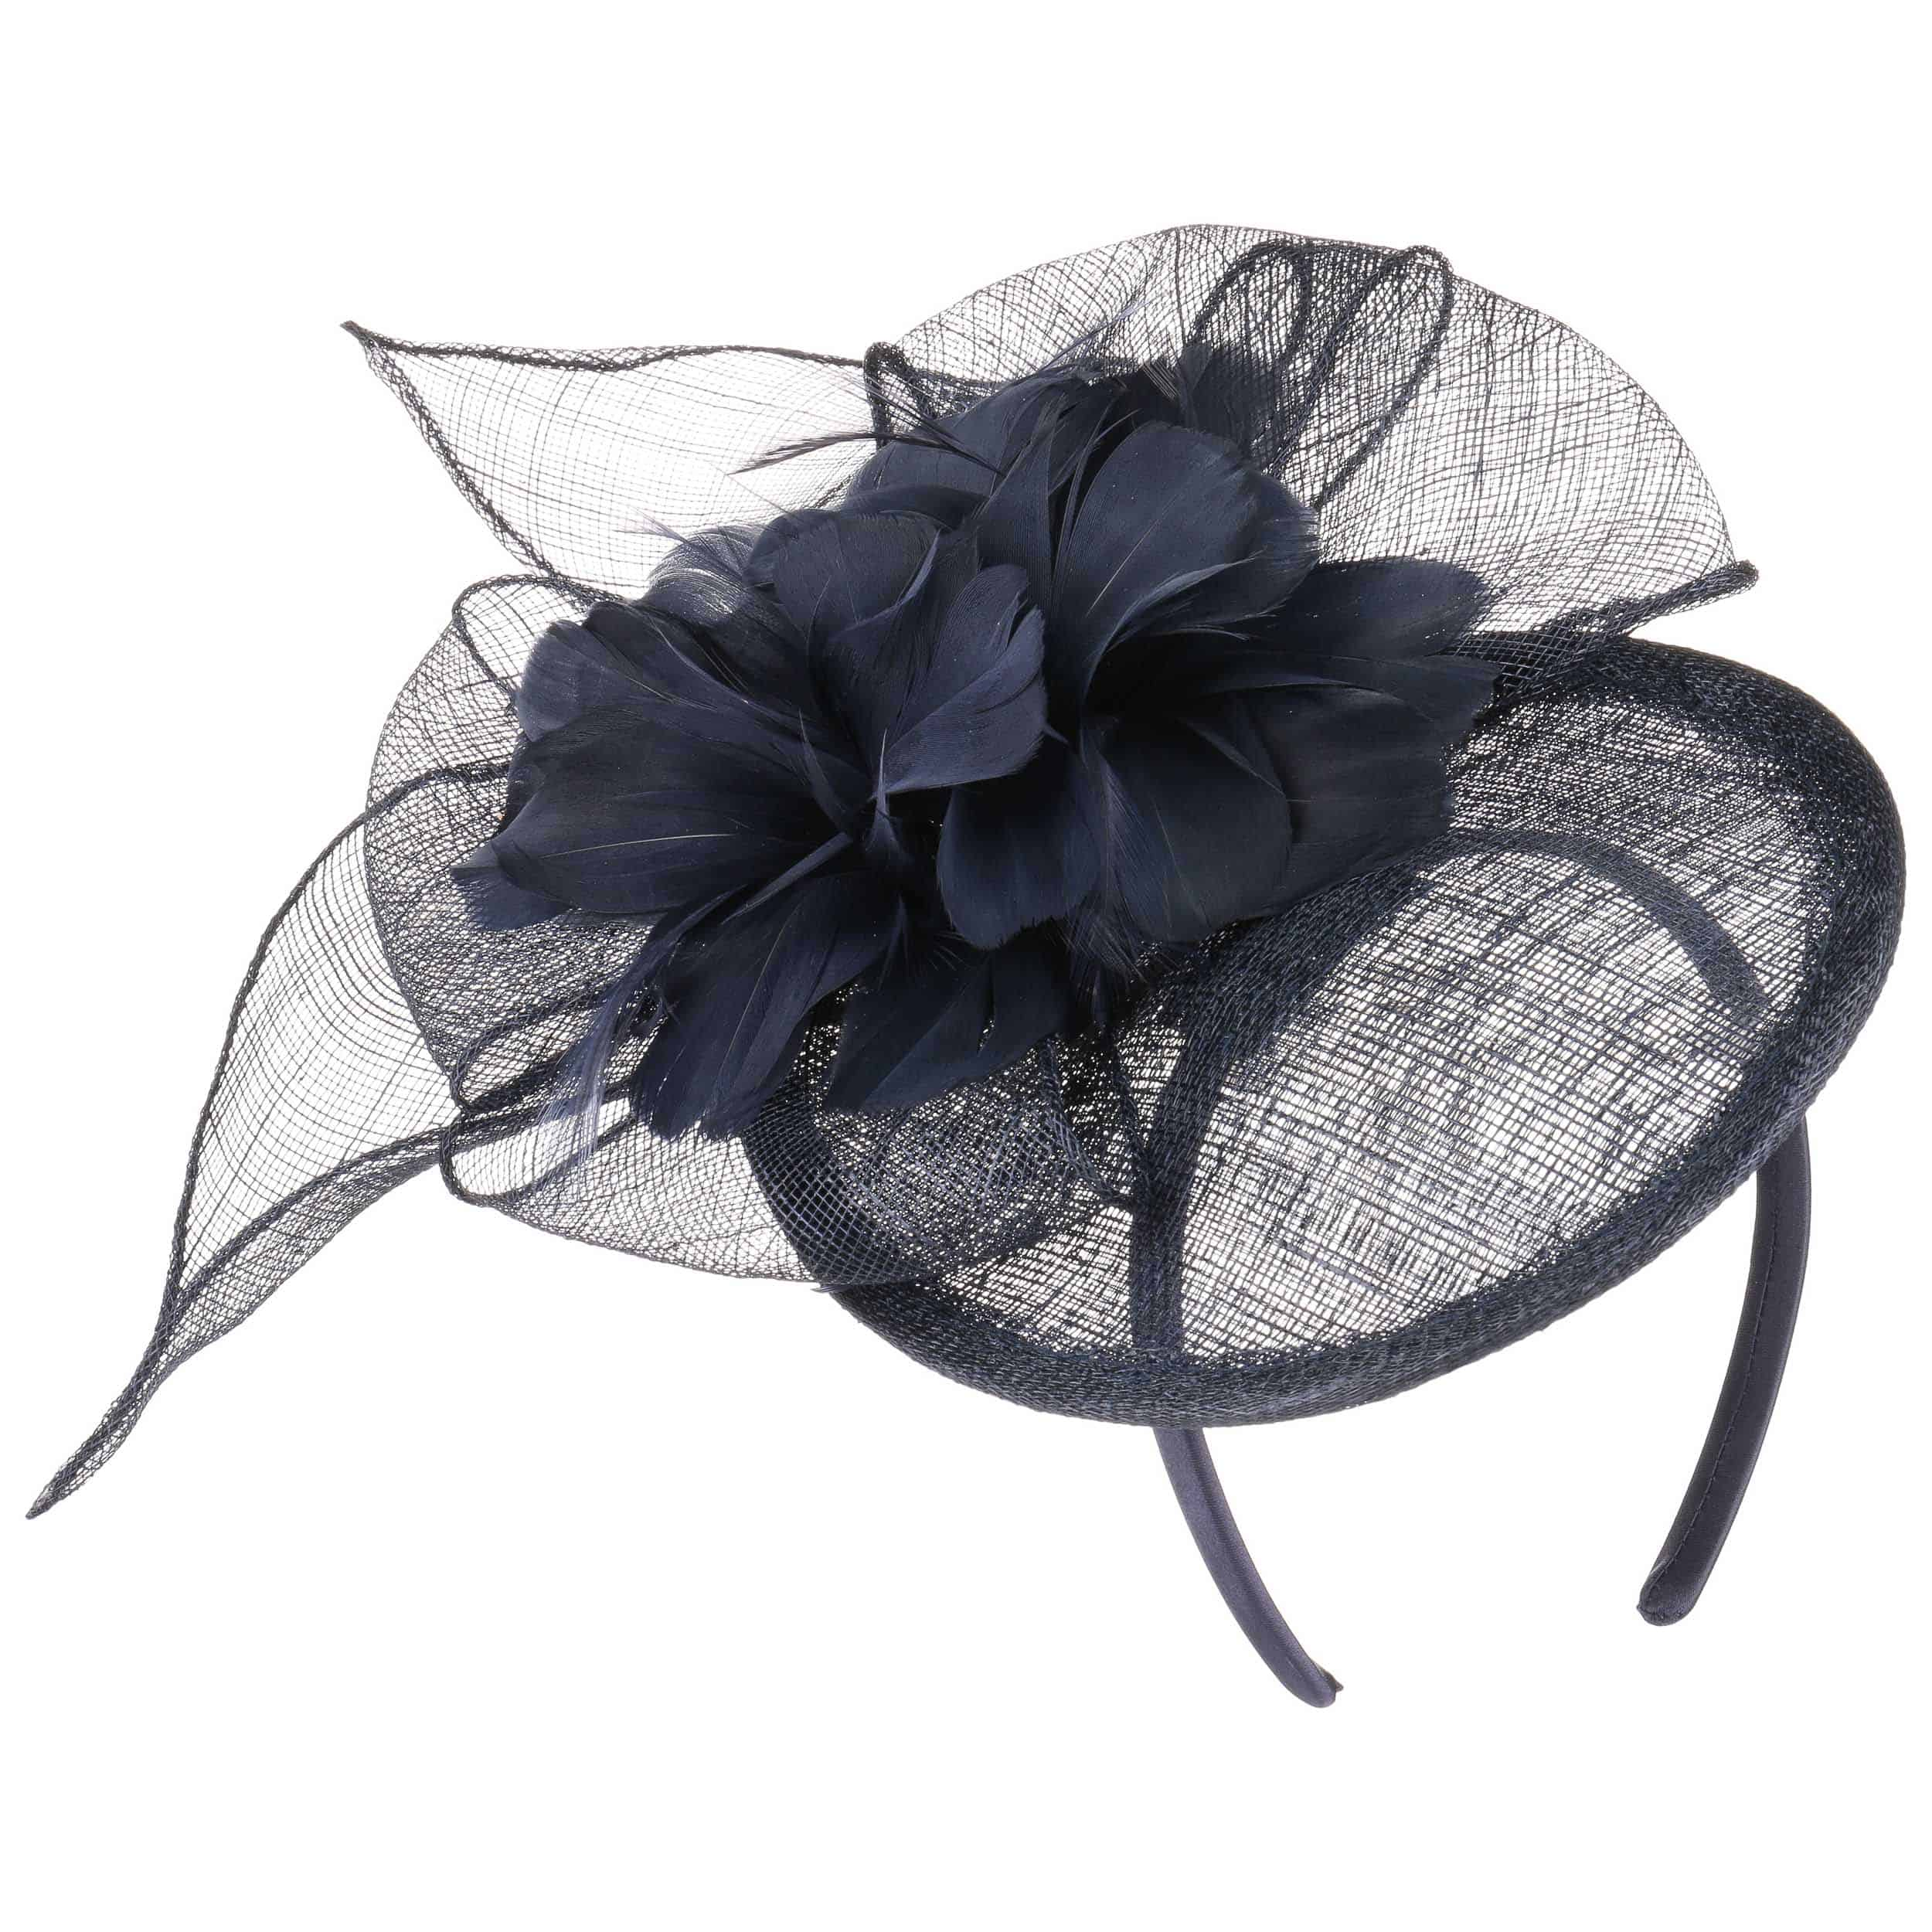 pimp up fascinator by maja prinzessin von hohenzollern 179 95. Black Bedroom Furniture Sets. Home Design Ideas